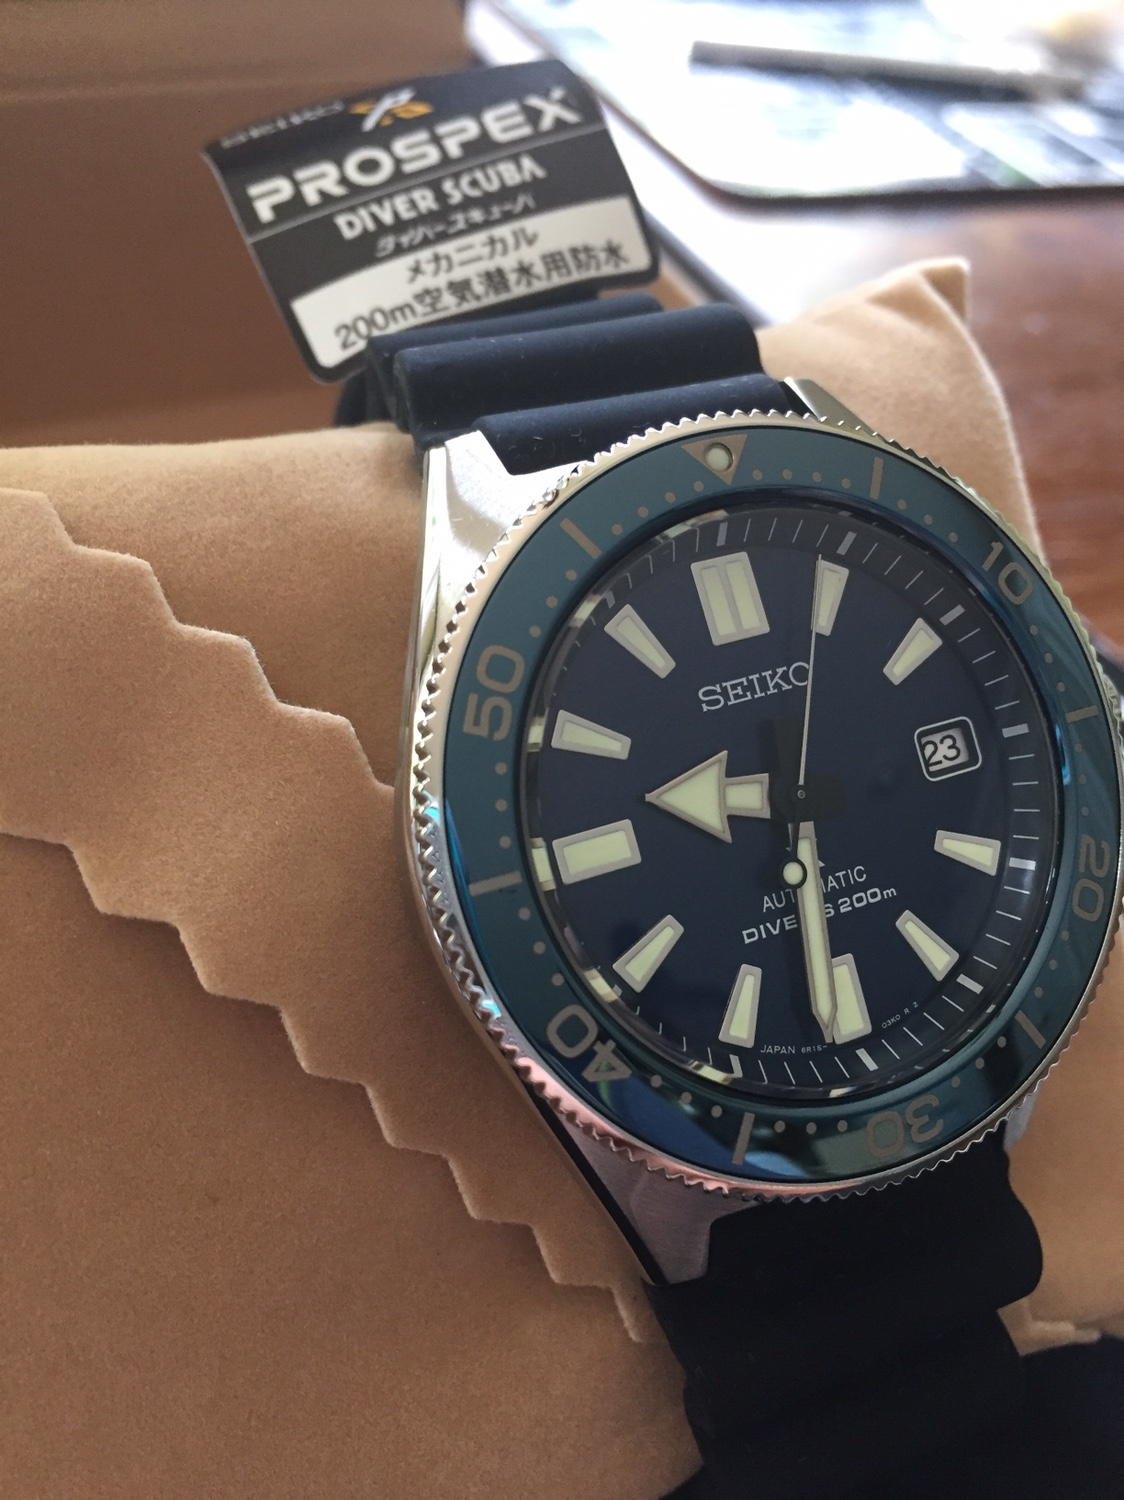 cf7aa6474b3 Re  As someone relatively new to watches